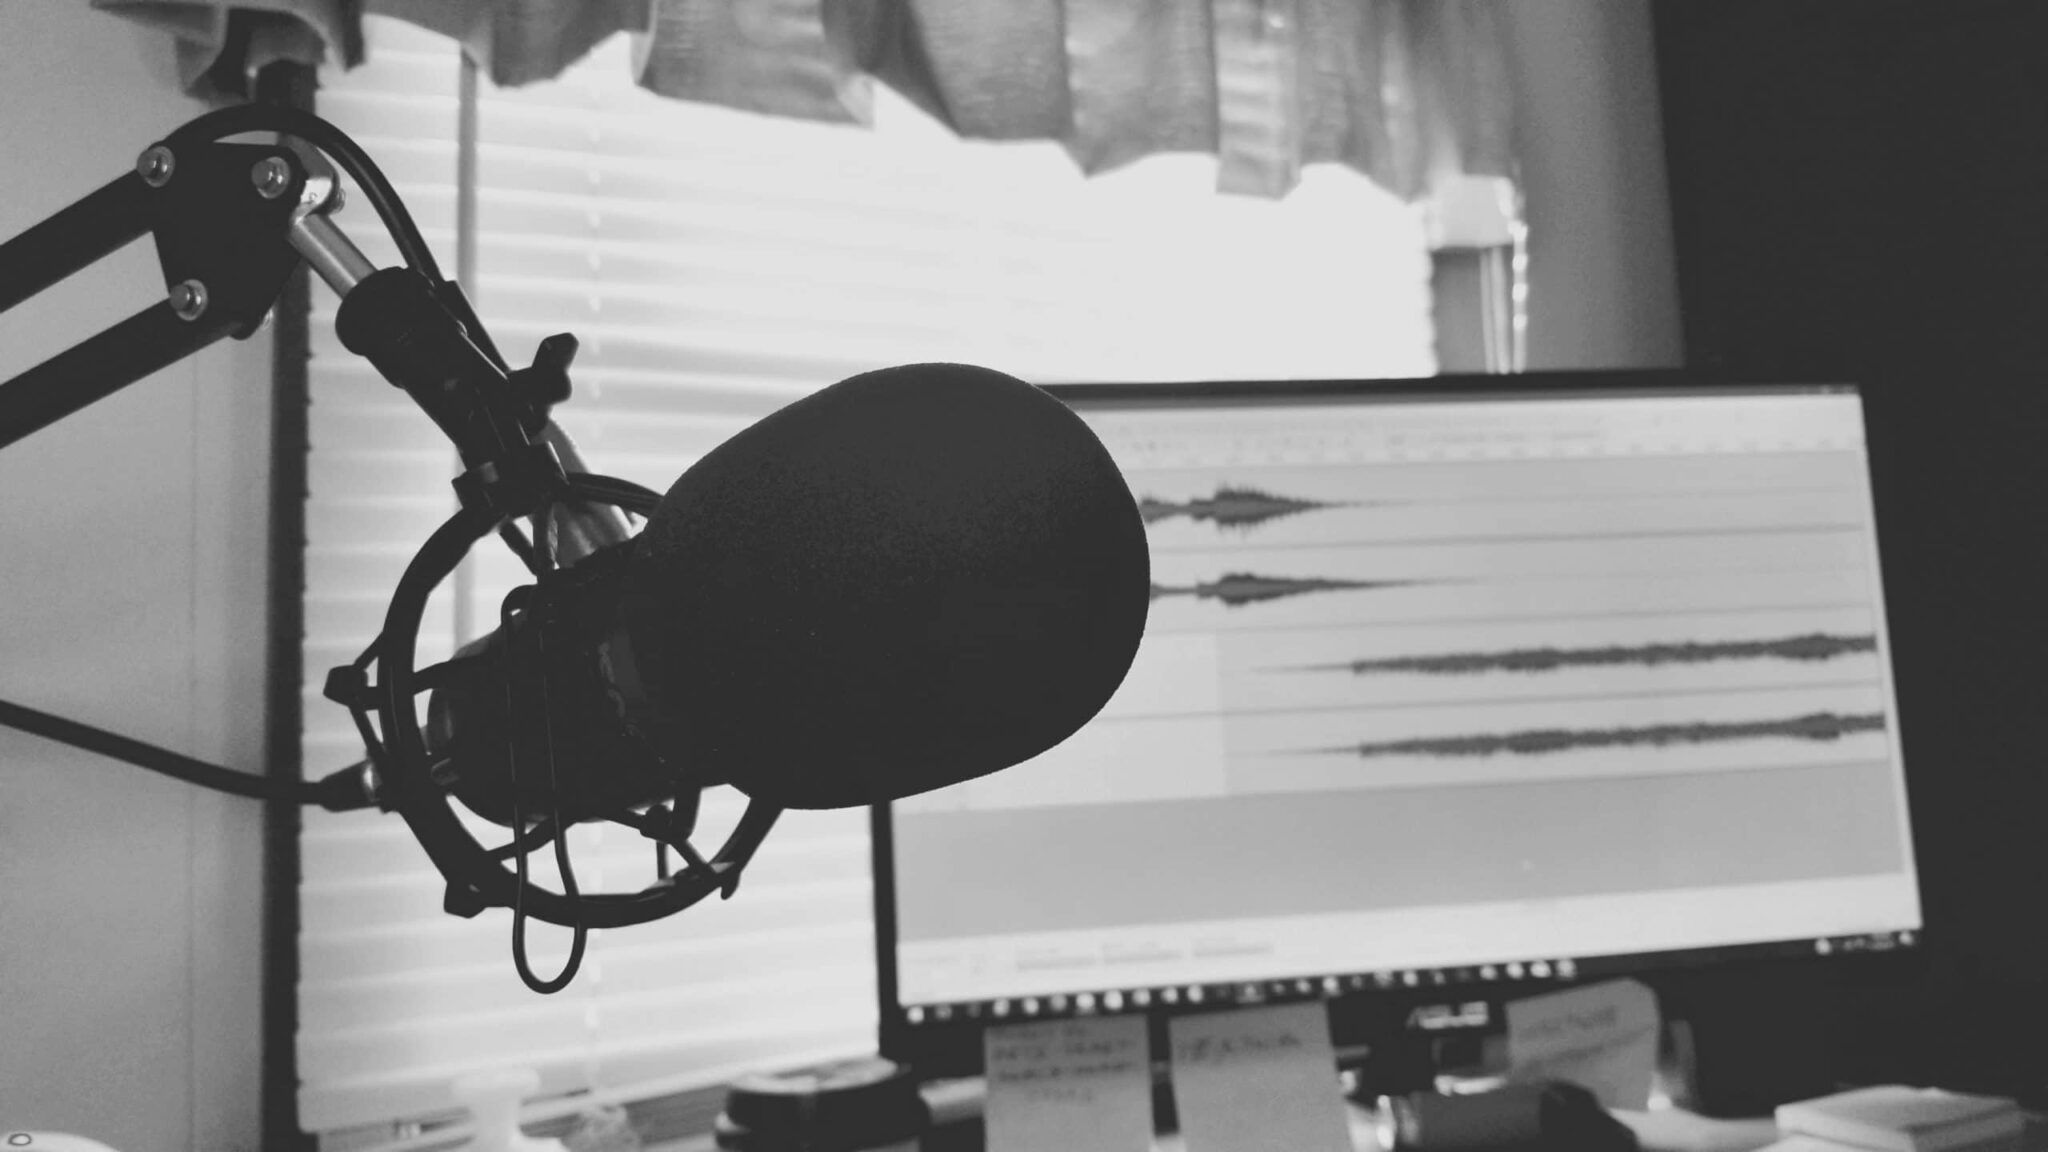 In Market: The Lone Star Podcast-listening state